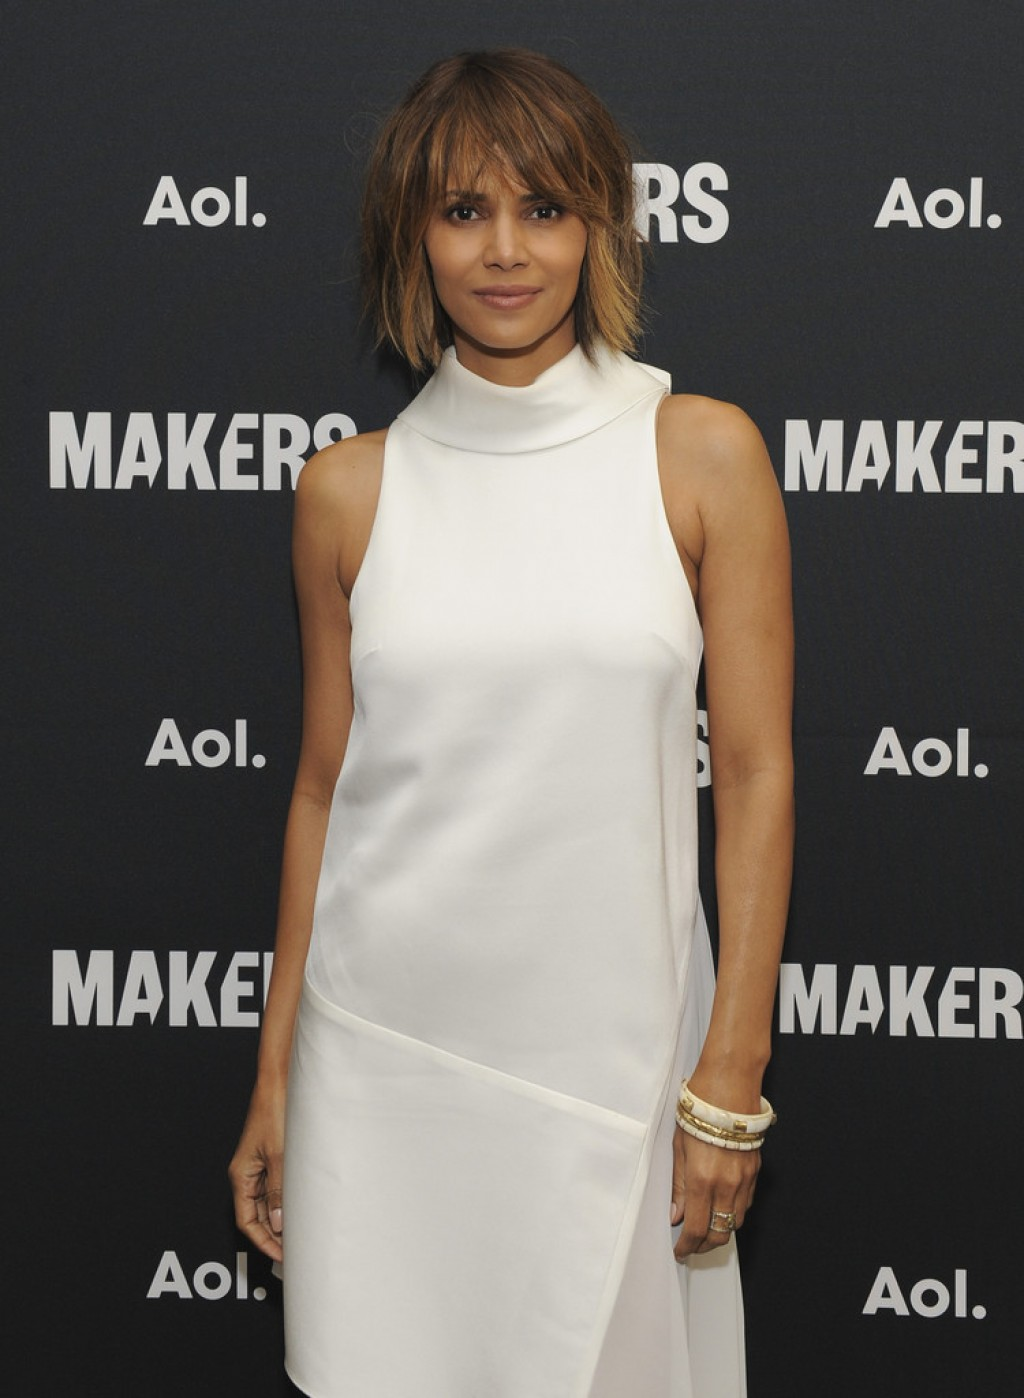 Makers-Conference-Halle-Berry-1024x1398-1